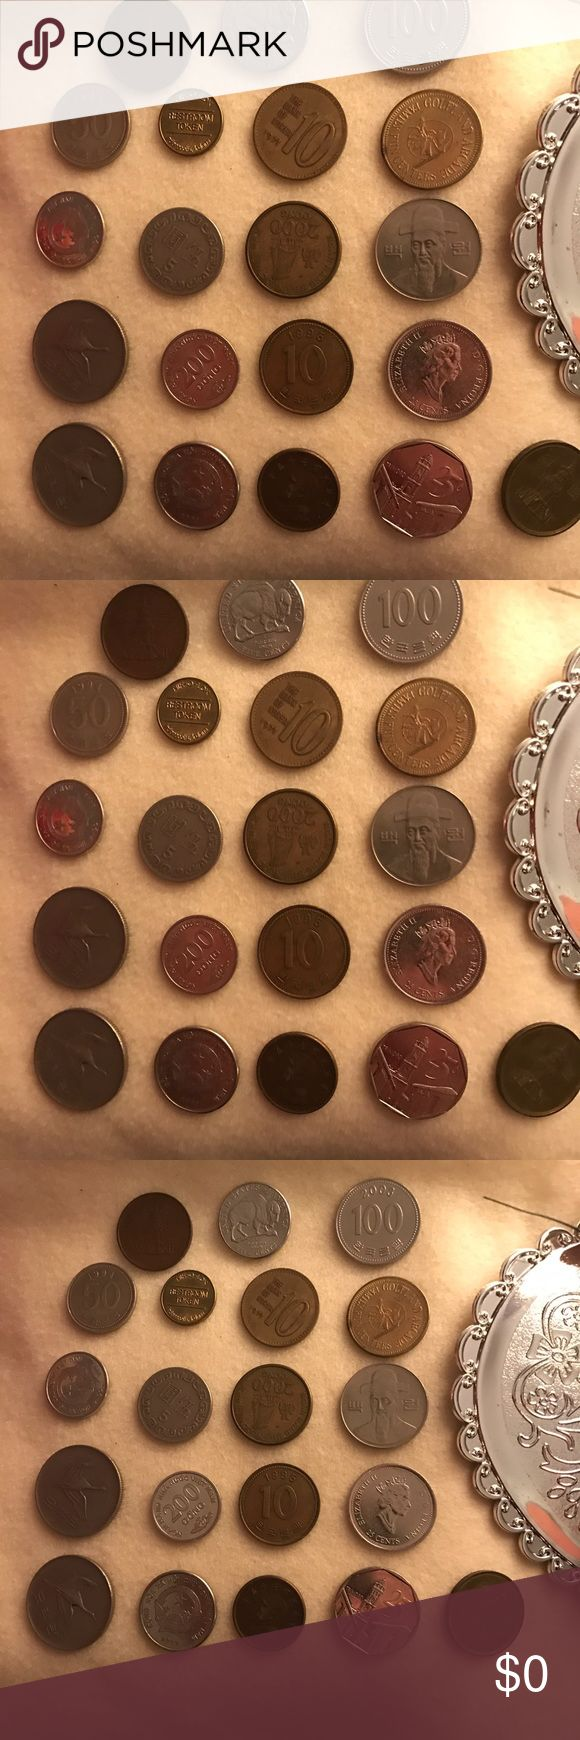 FOREIGN COIN COLLECTION . (20) count. VARIETY of Foreign Coins. Contemplating value . 🤔 Other